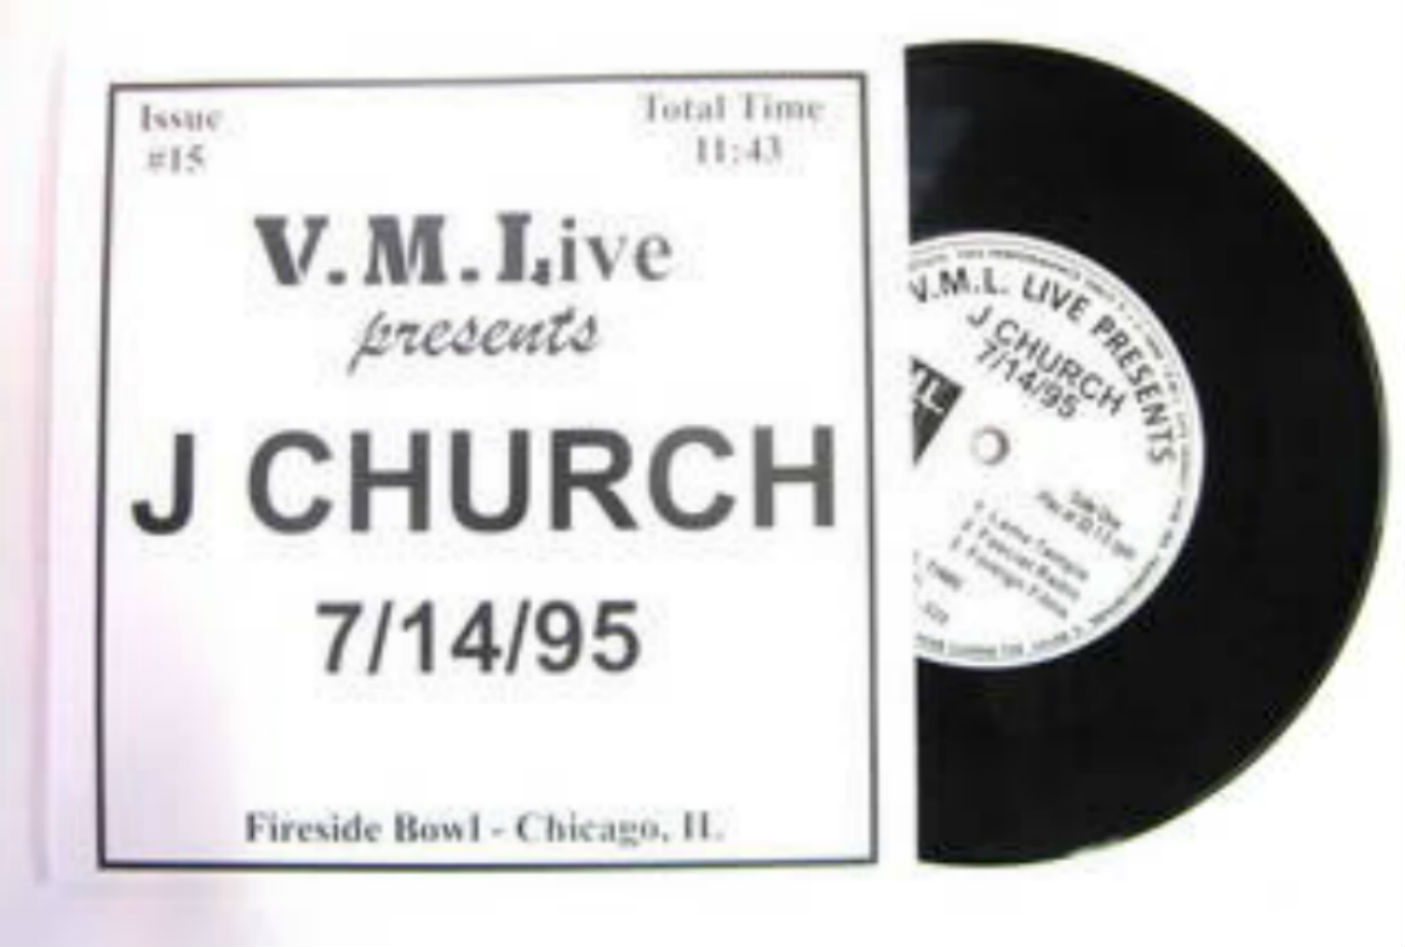 J Church - V.m.l. Live Presents: 7/14/95 Fireside Bowl, Chicago, Il